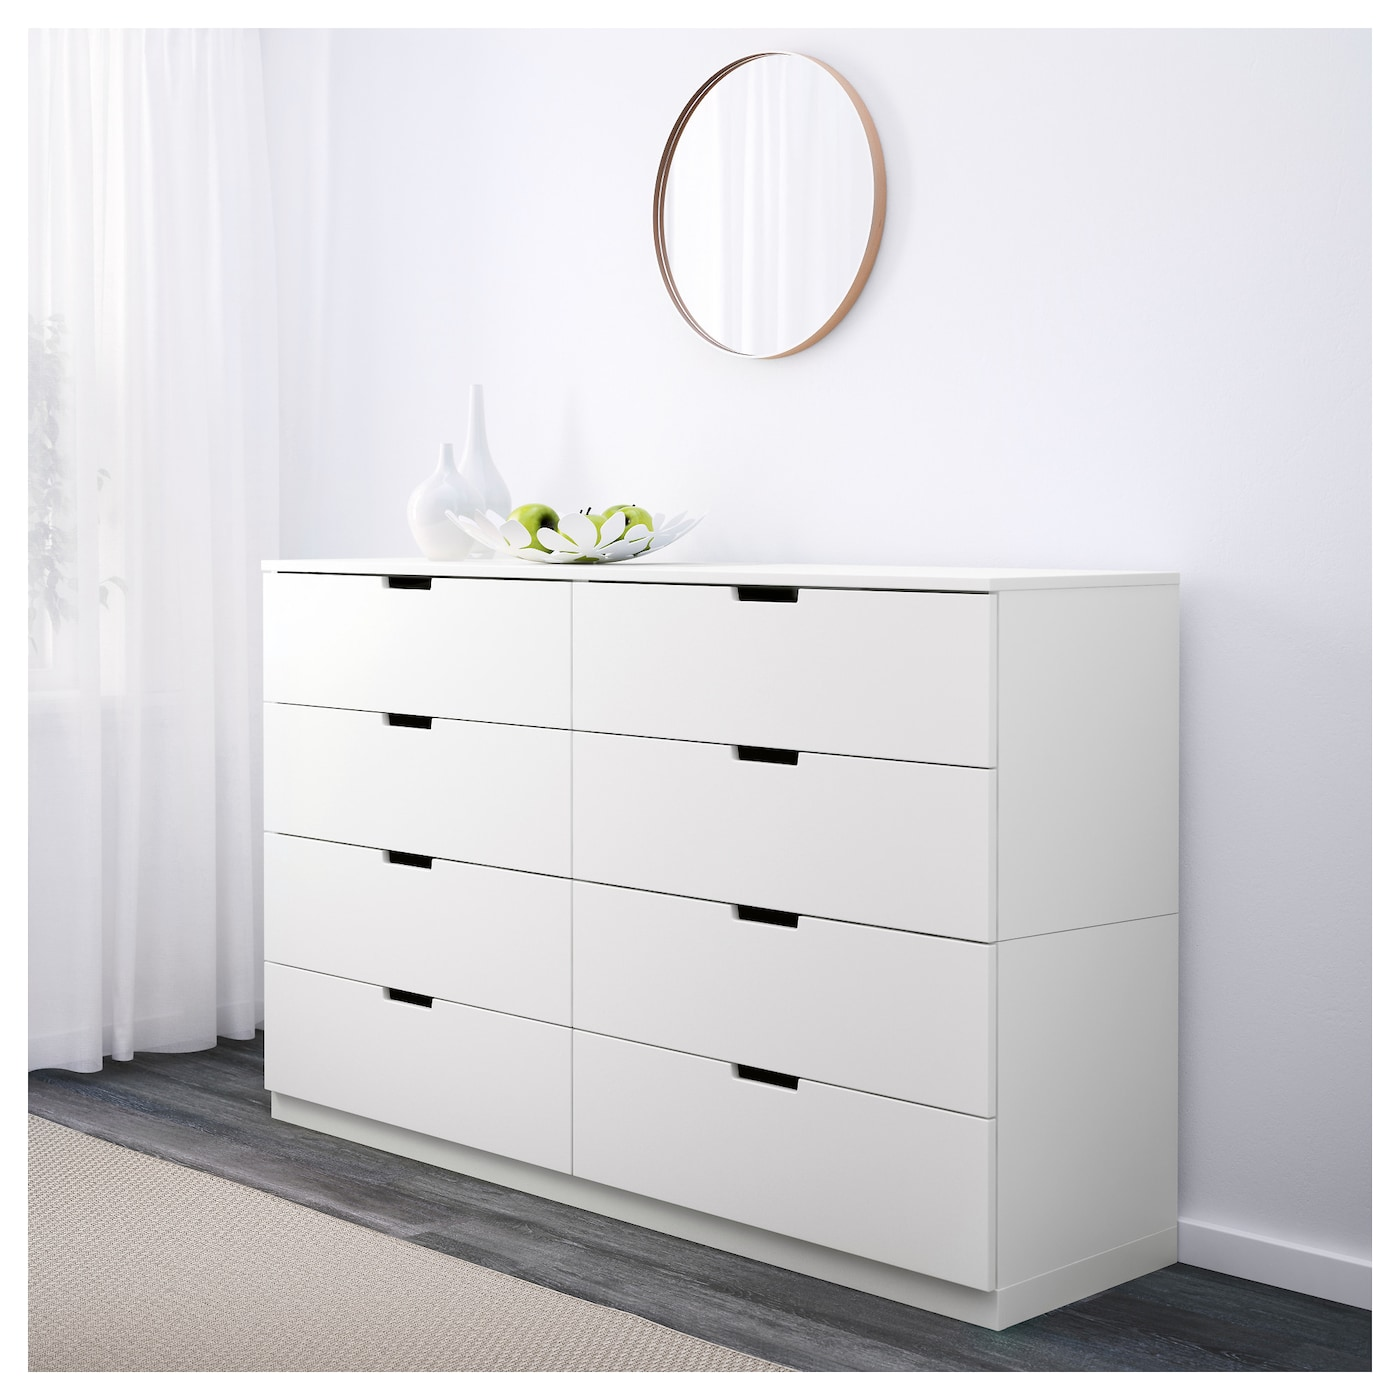 IKEA NORDLI chest of 8 drawers. NORDLI Chest of 8 drawers White 160x97 cm   IKEA